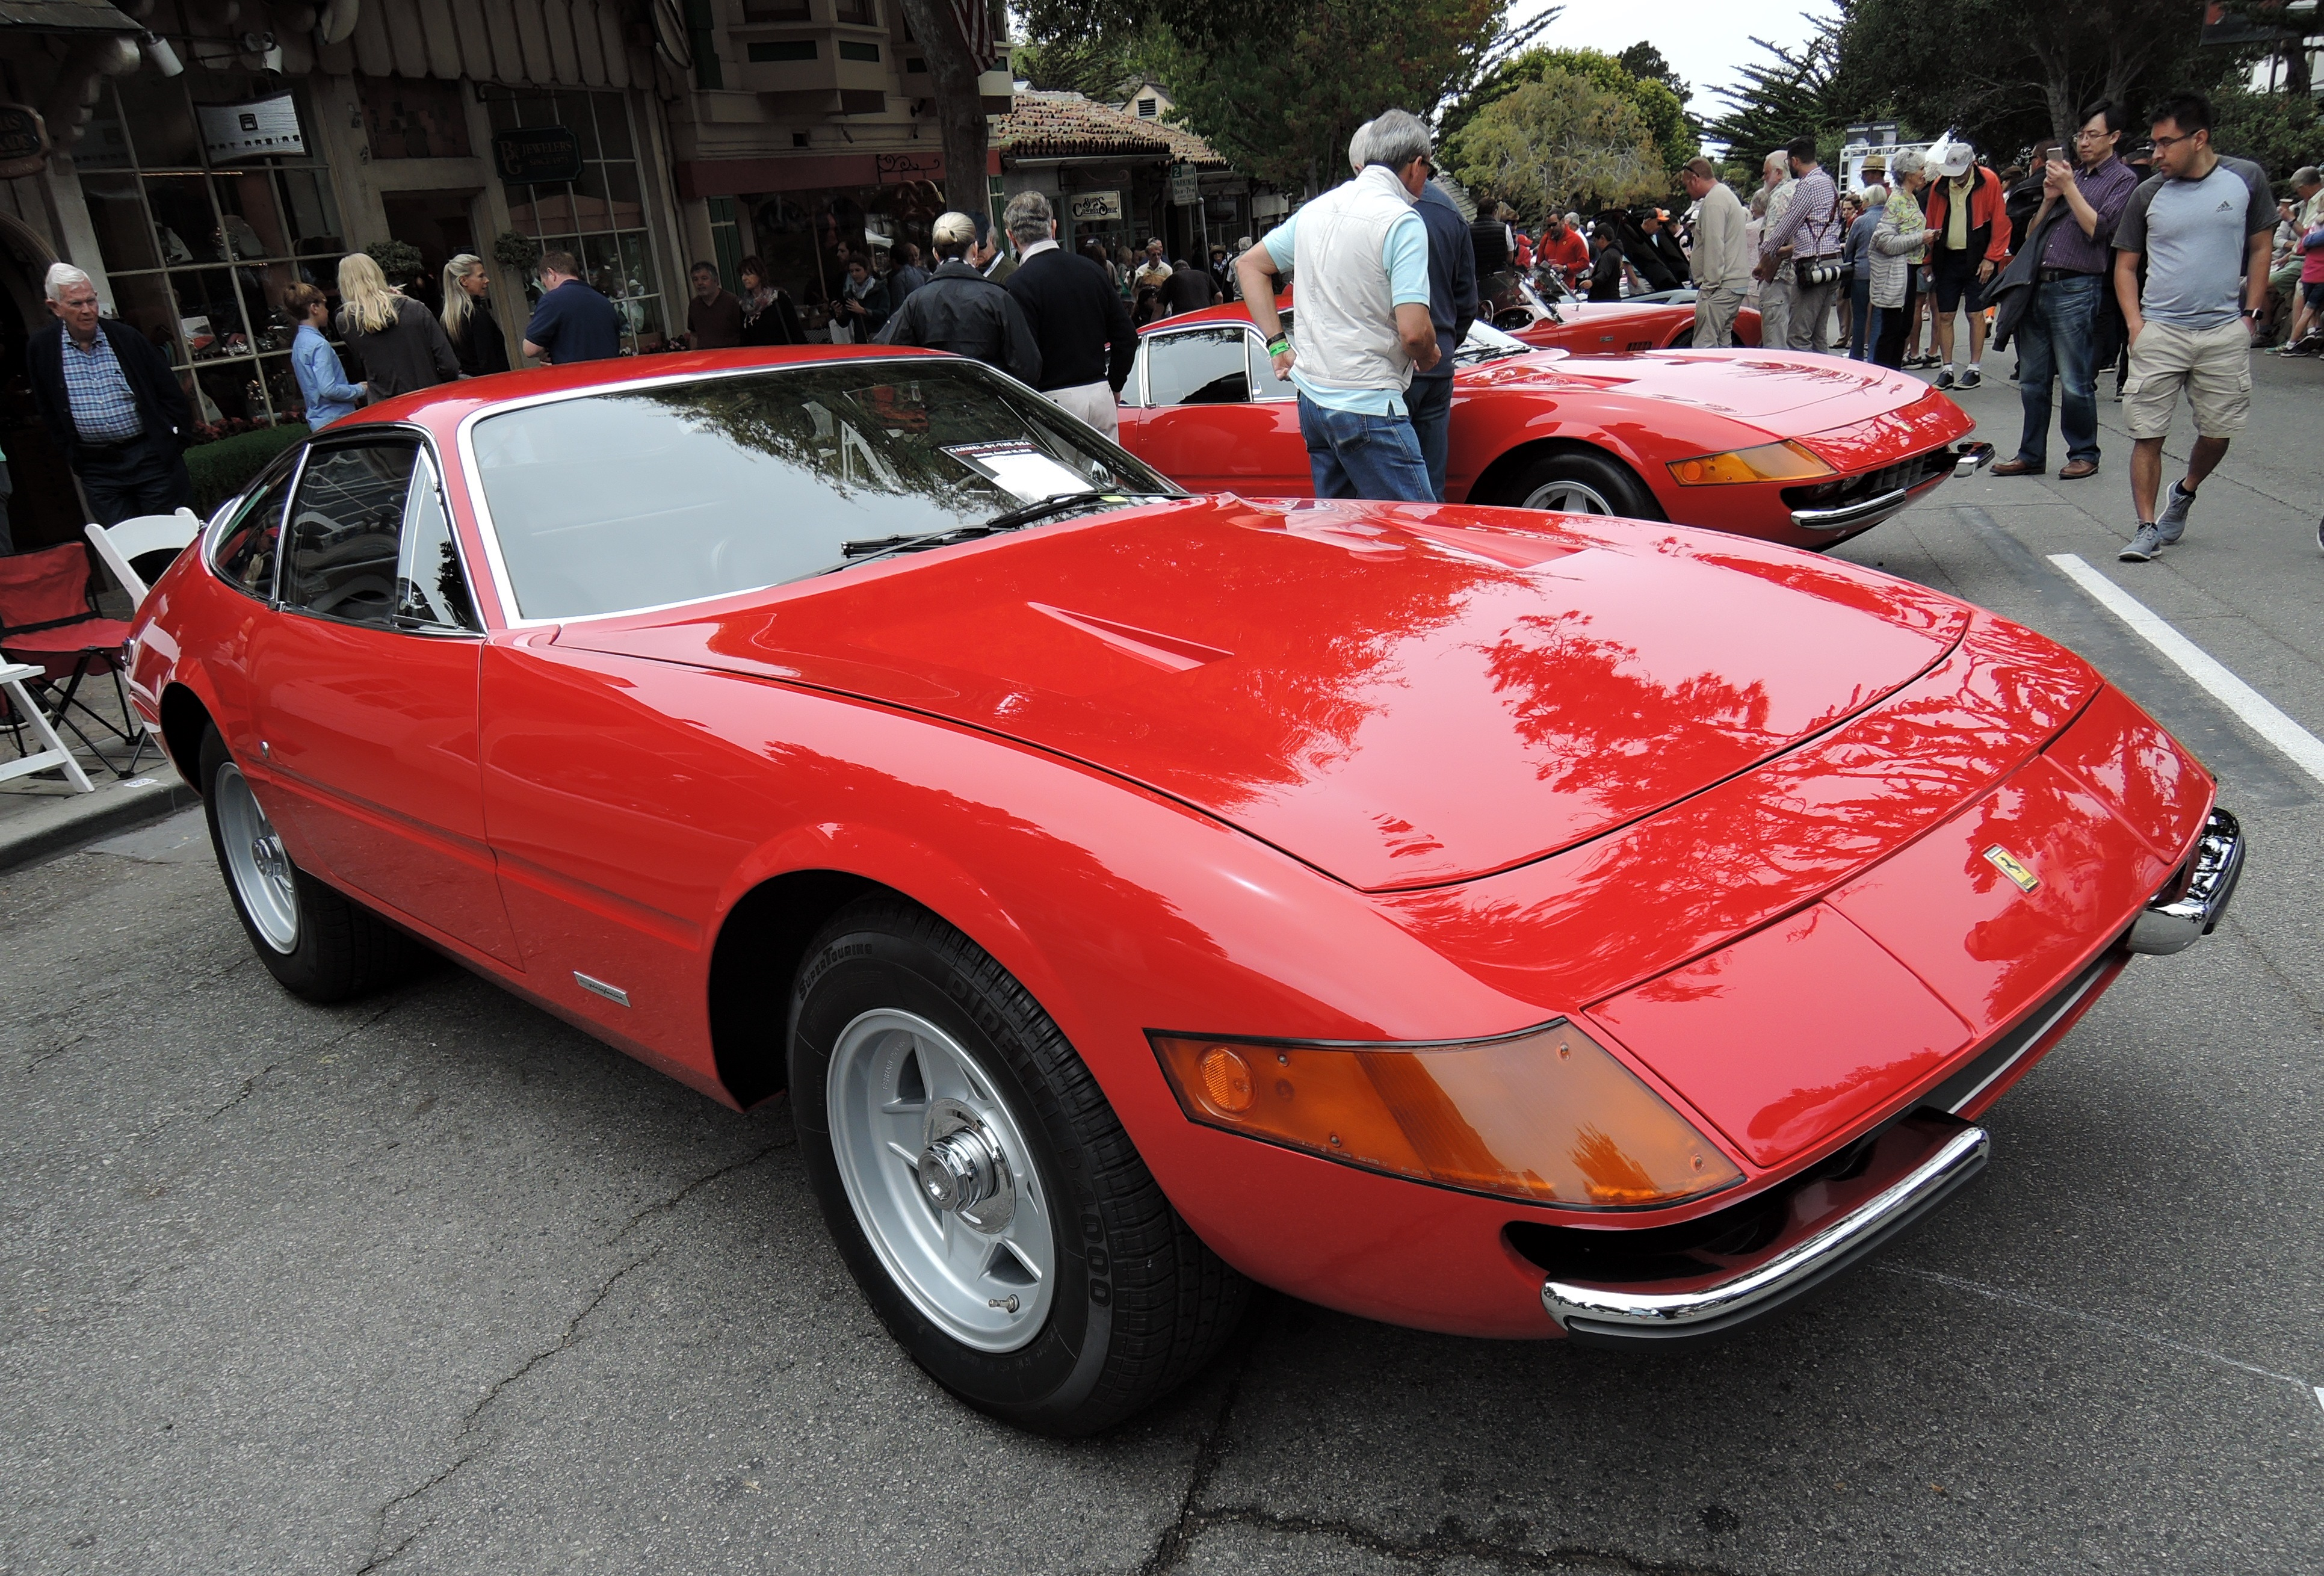 red 1975 Ferrari 365 GTB/4 - Concours on the Ave Carmel